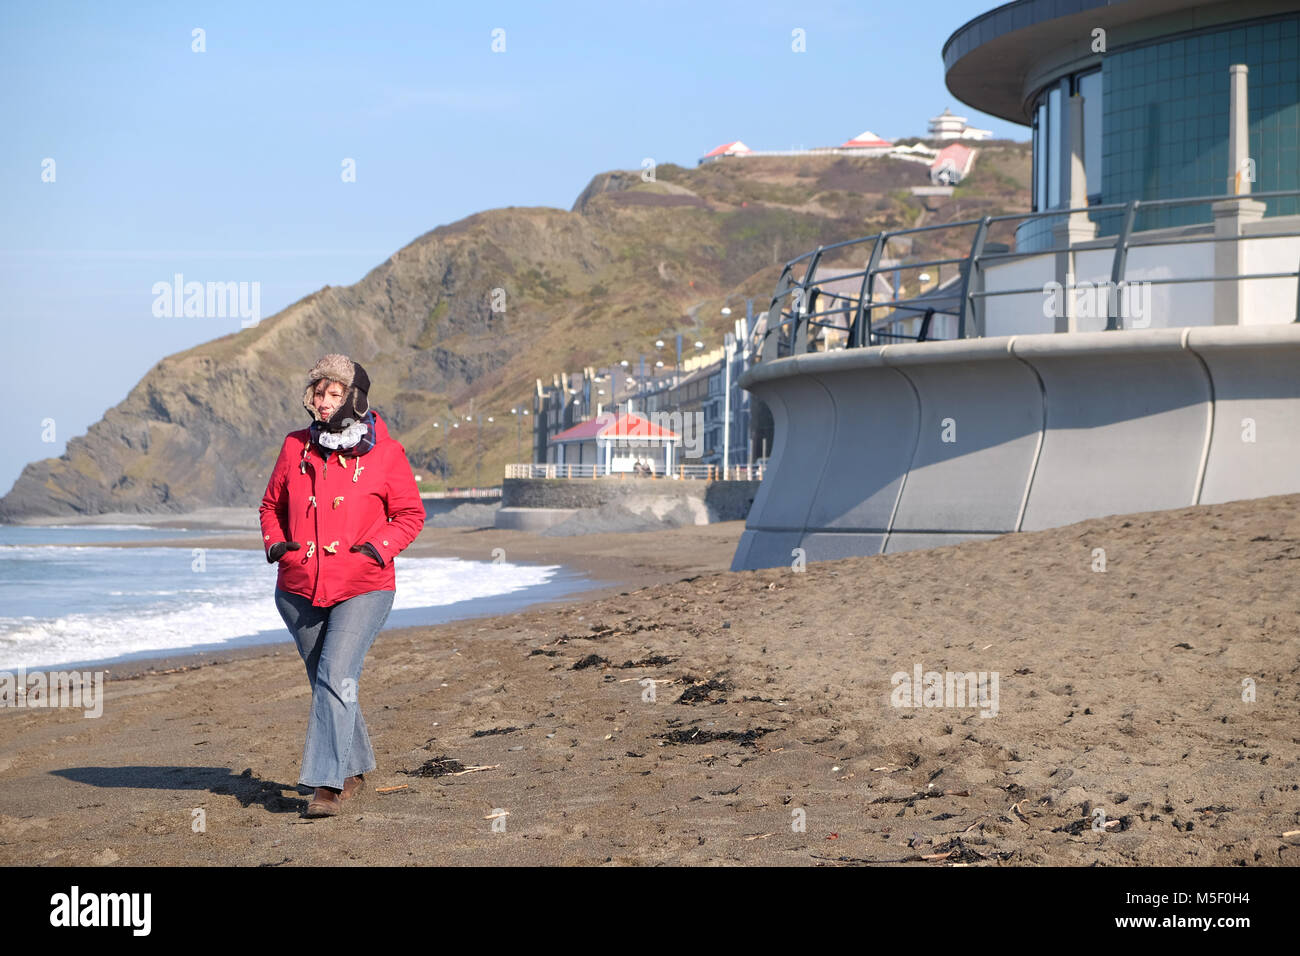 Aberystwyth, Ceredigion, Wales - Friday 23rd February 2018 - UK Weather - Sunny bright weather but cold on the coast - Stock Image